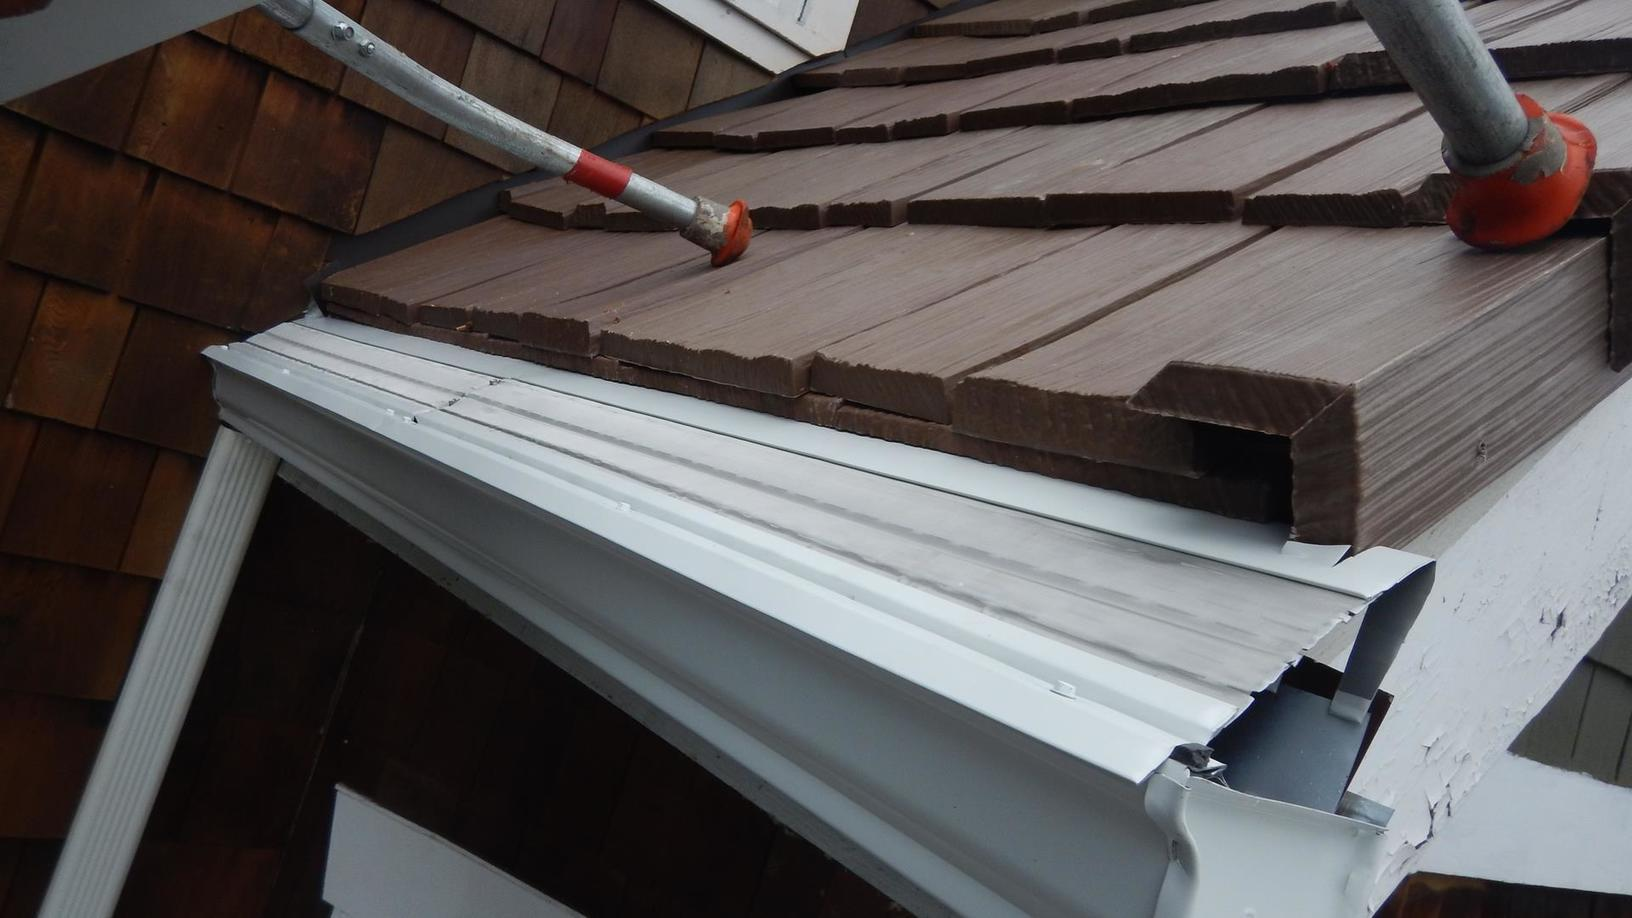 New gutters and MasterShield going up